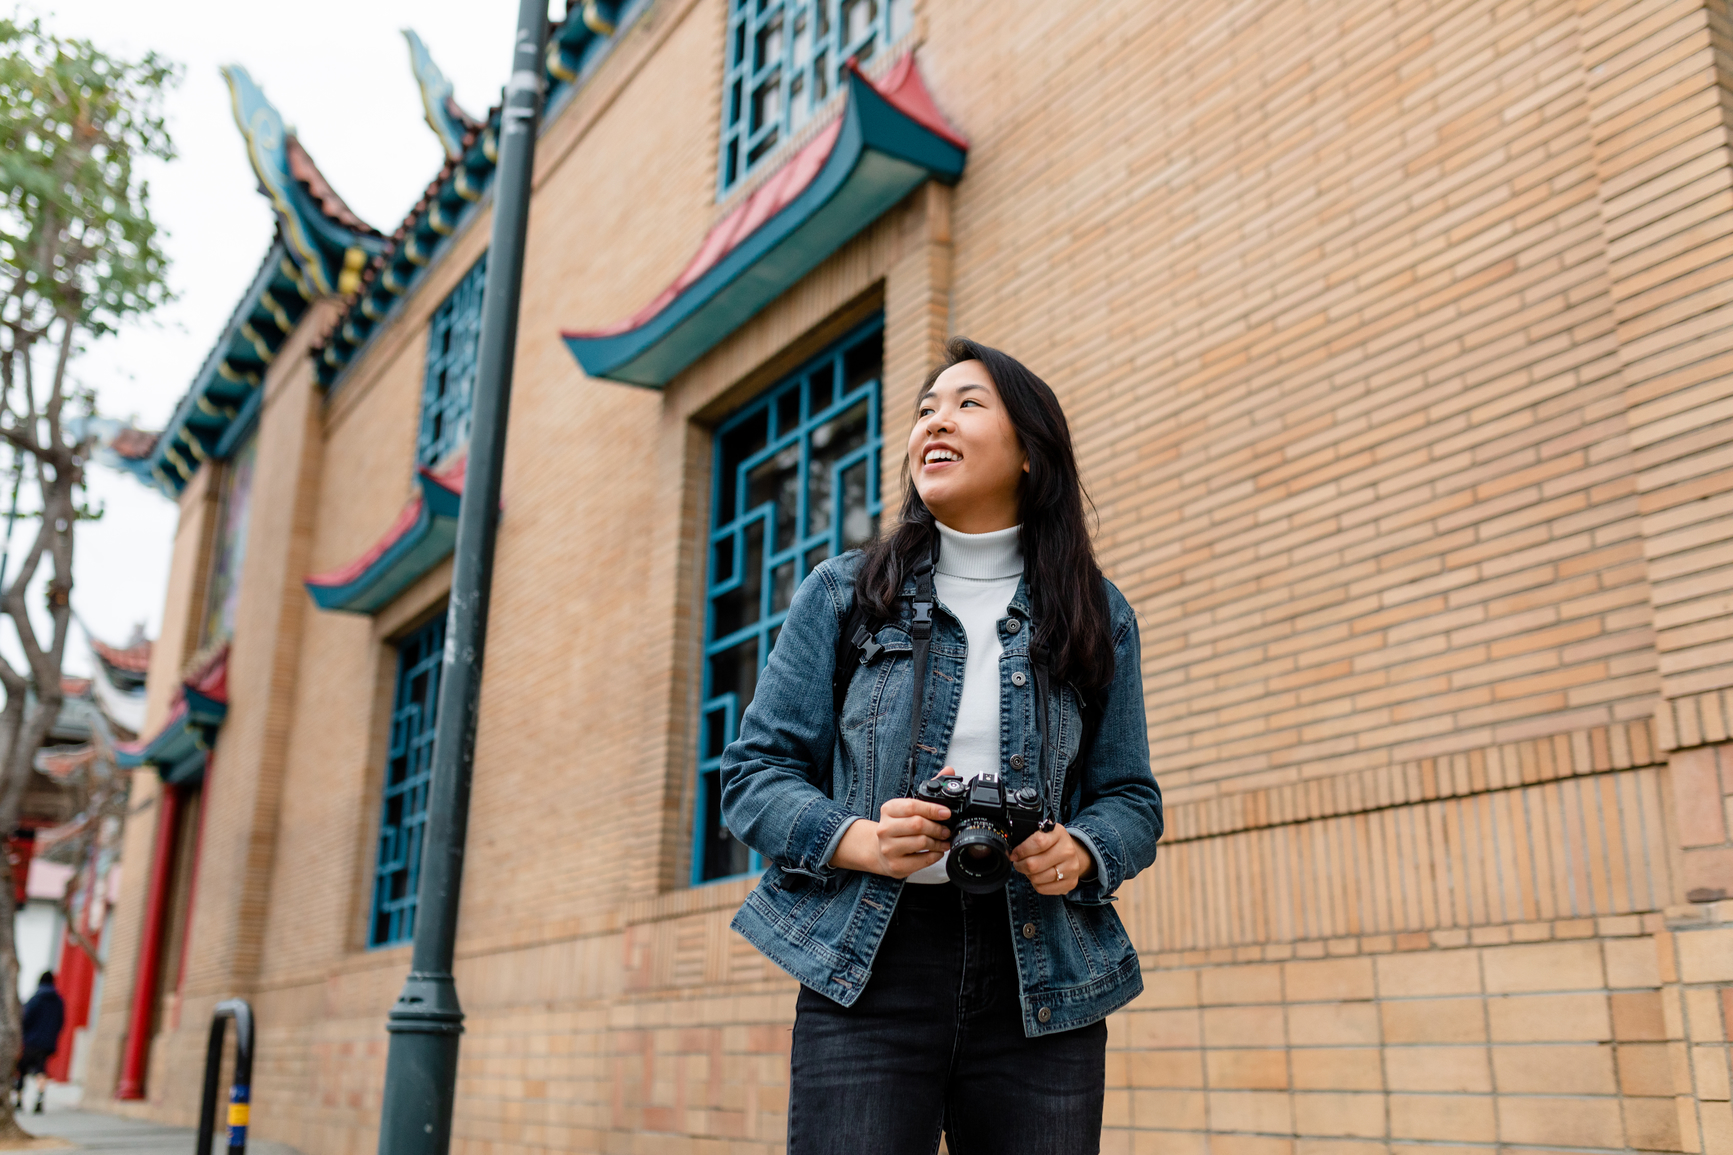 A happy young Asian woman with a film camera around her neck travels solo.